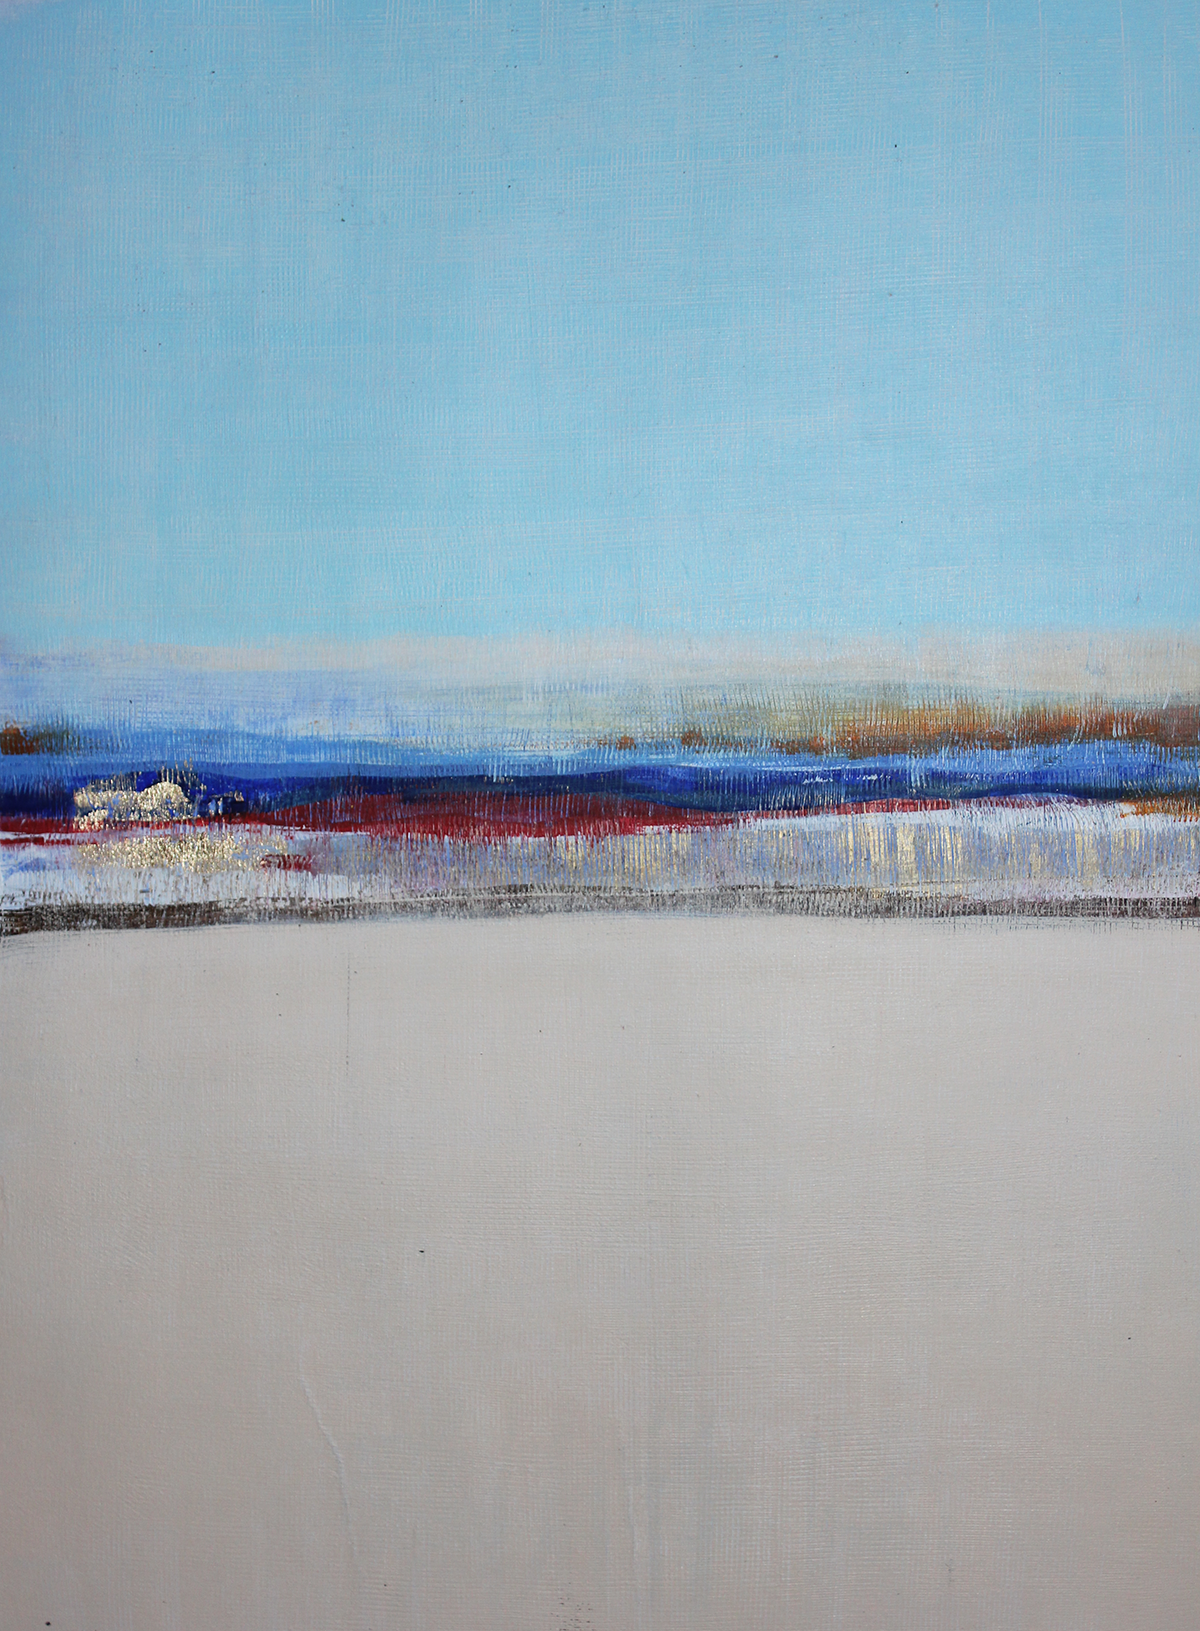 Taba to Cairo - Abstract Painting by John Lally